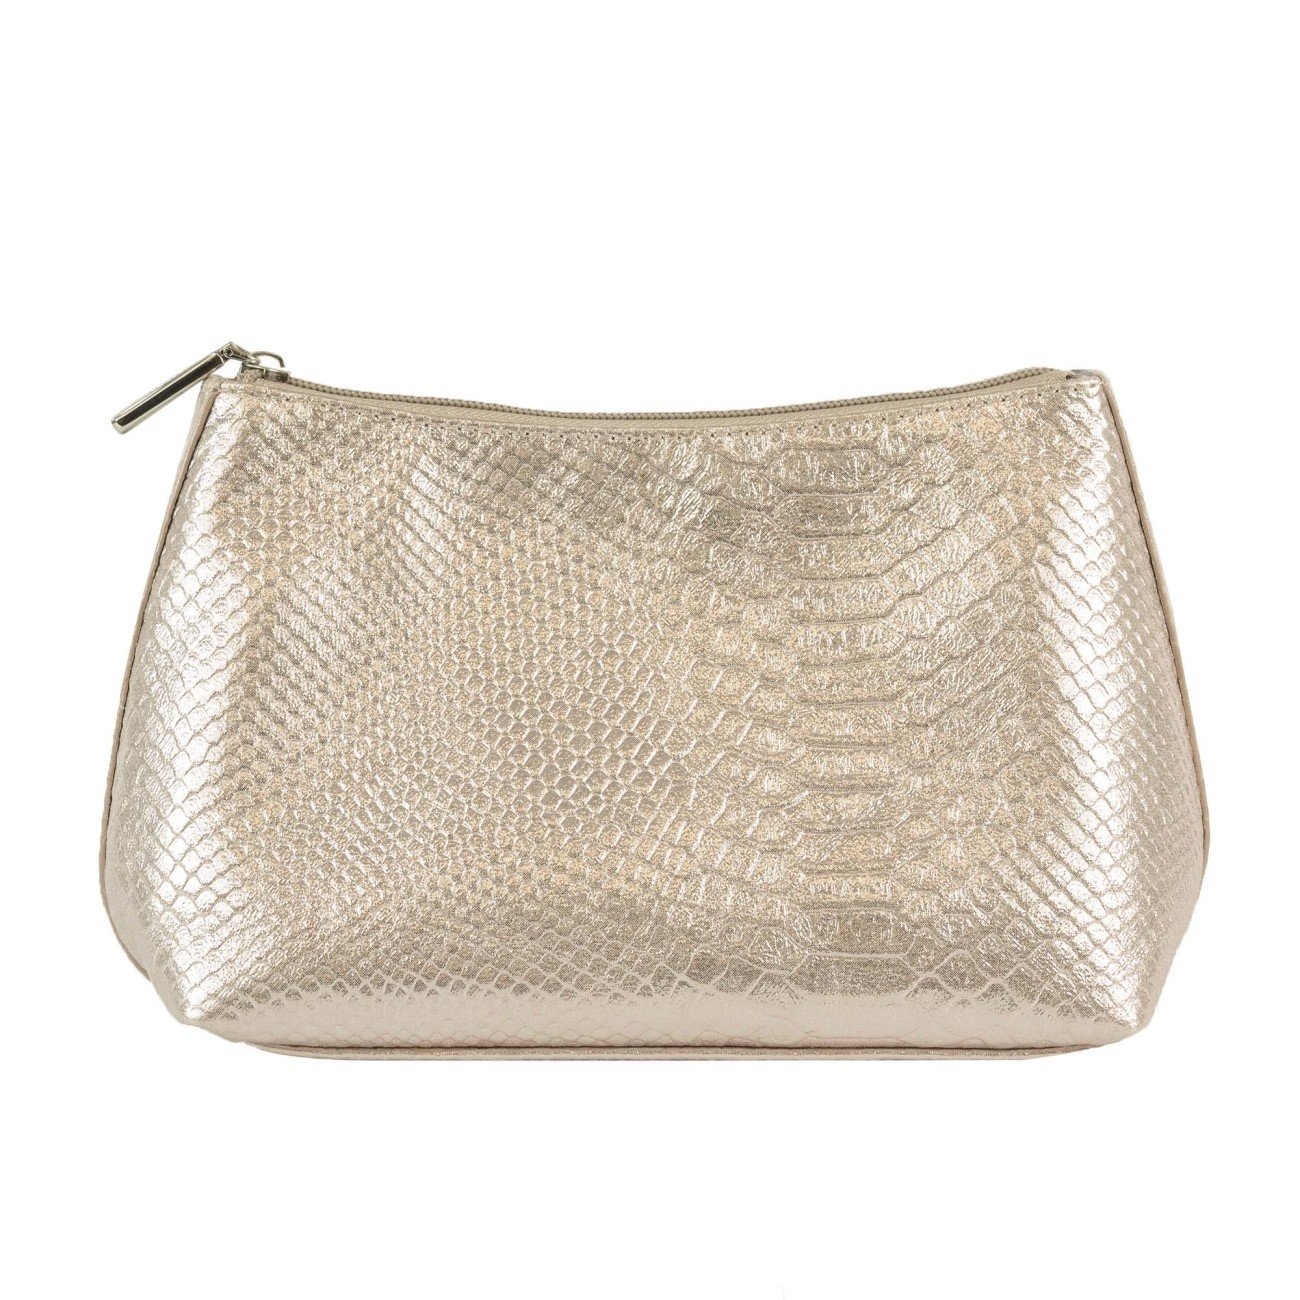 Philips Cosmetic Pouch, Gold Snake, 0.32 Pound Norelco 7507012